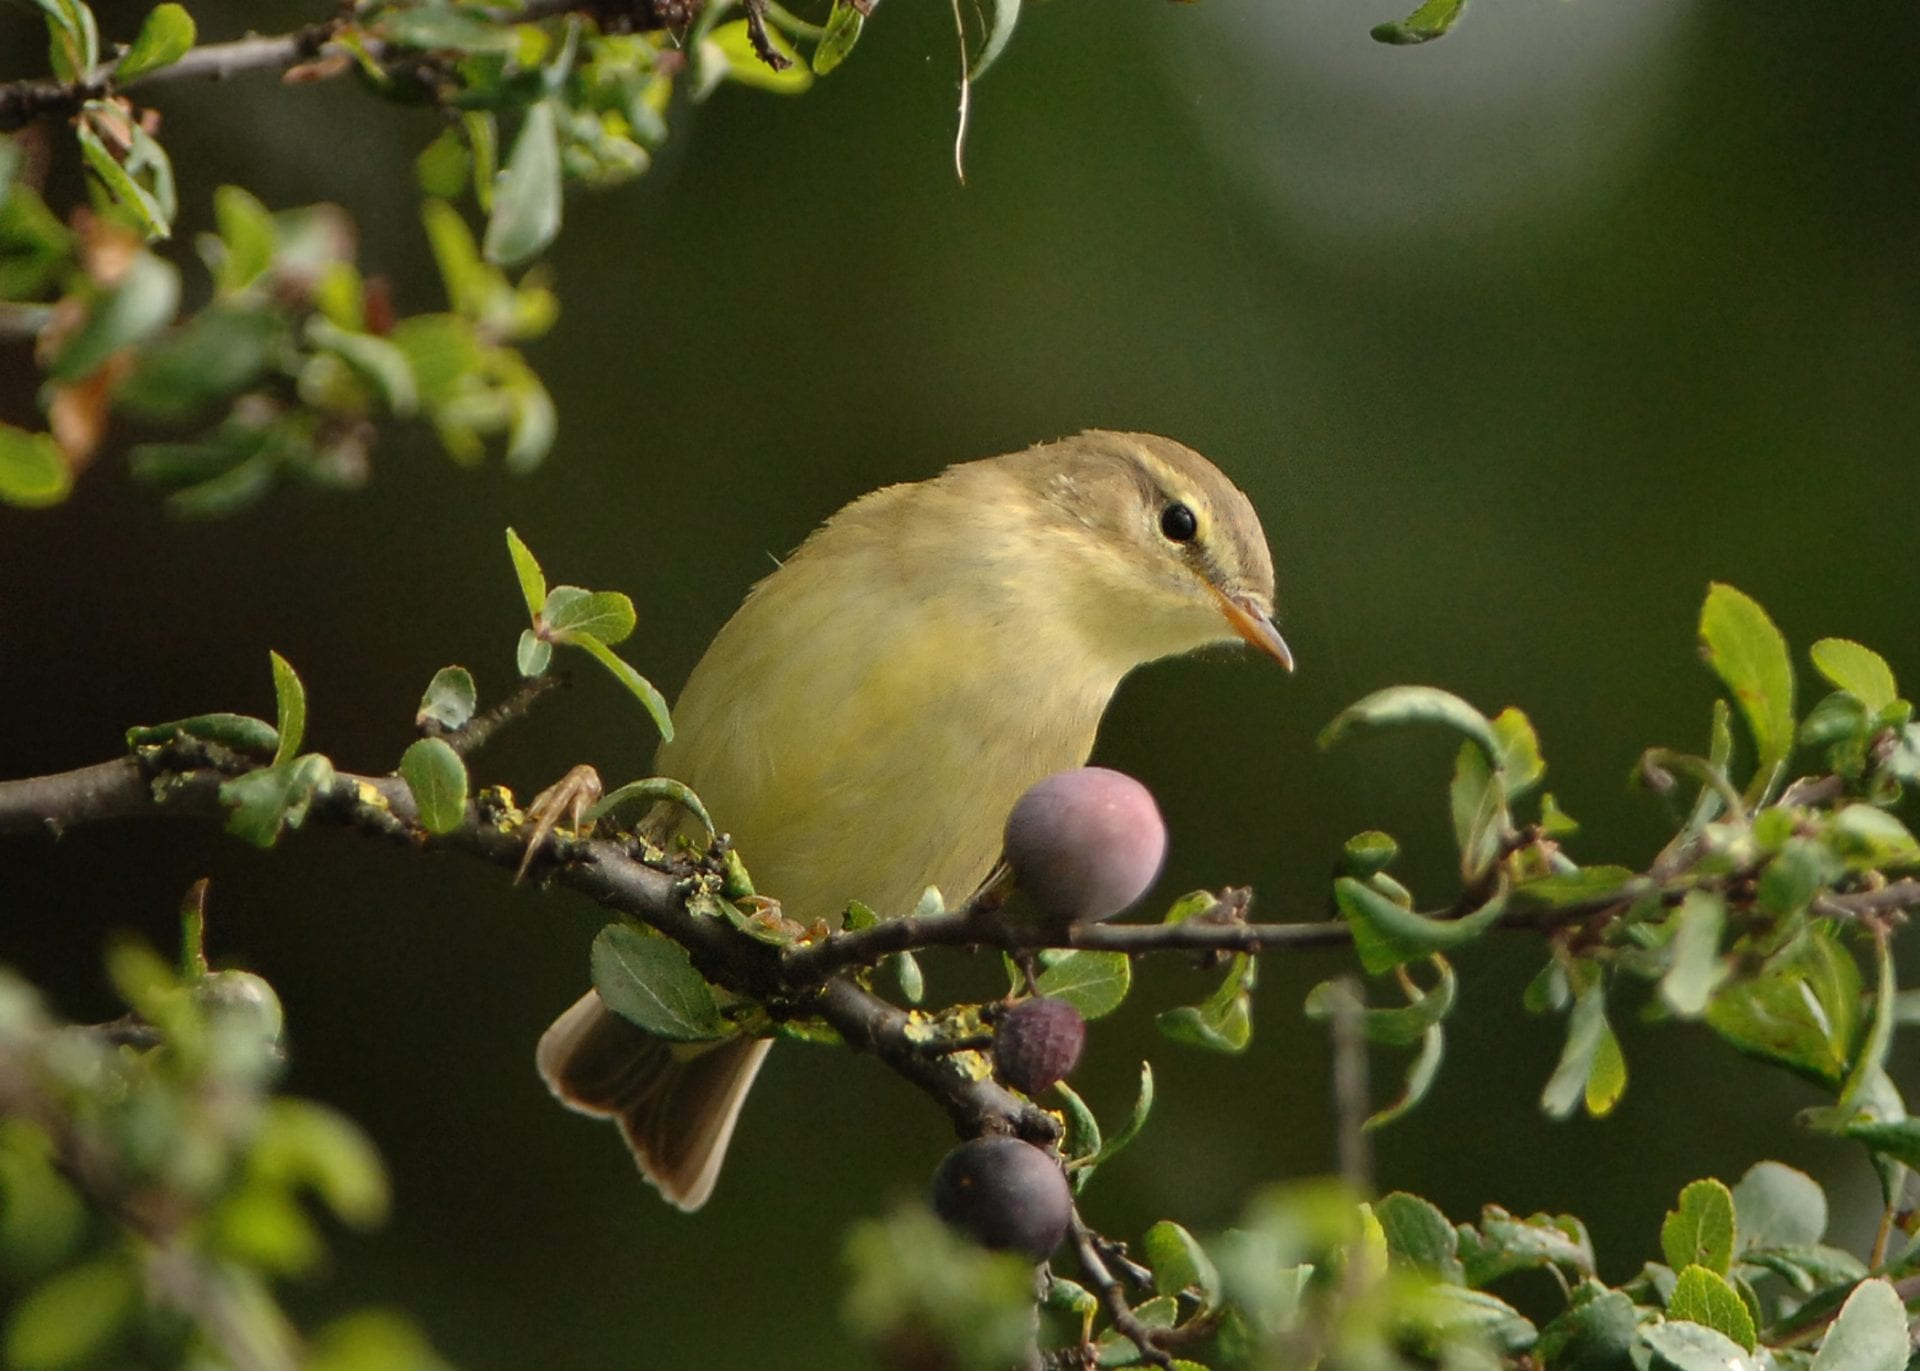 willow-warbler-perched-on-fruiting-blackthorn-bush